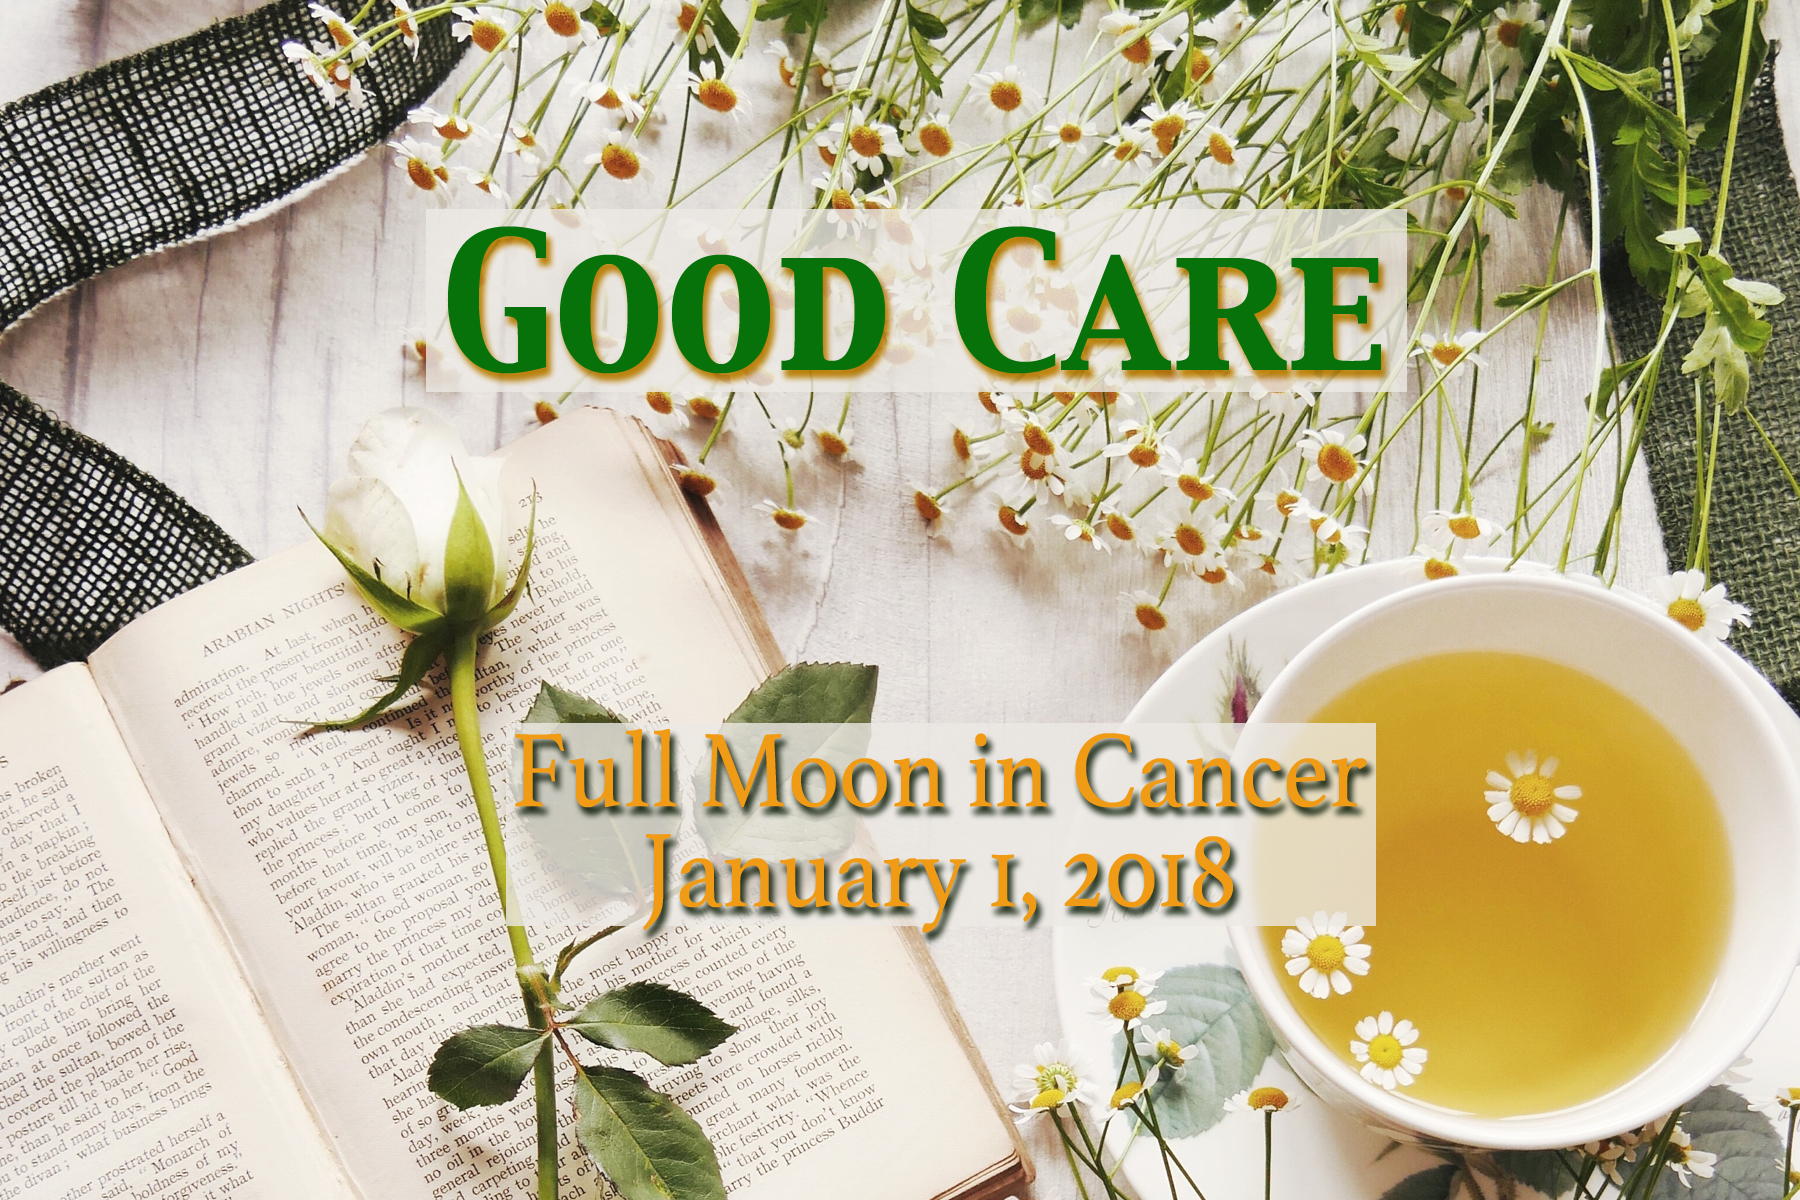 Full Moon in Cancer: Good Care